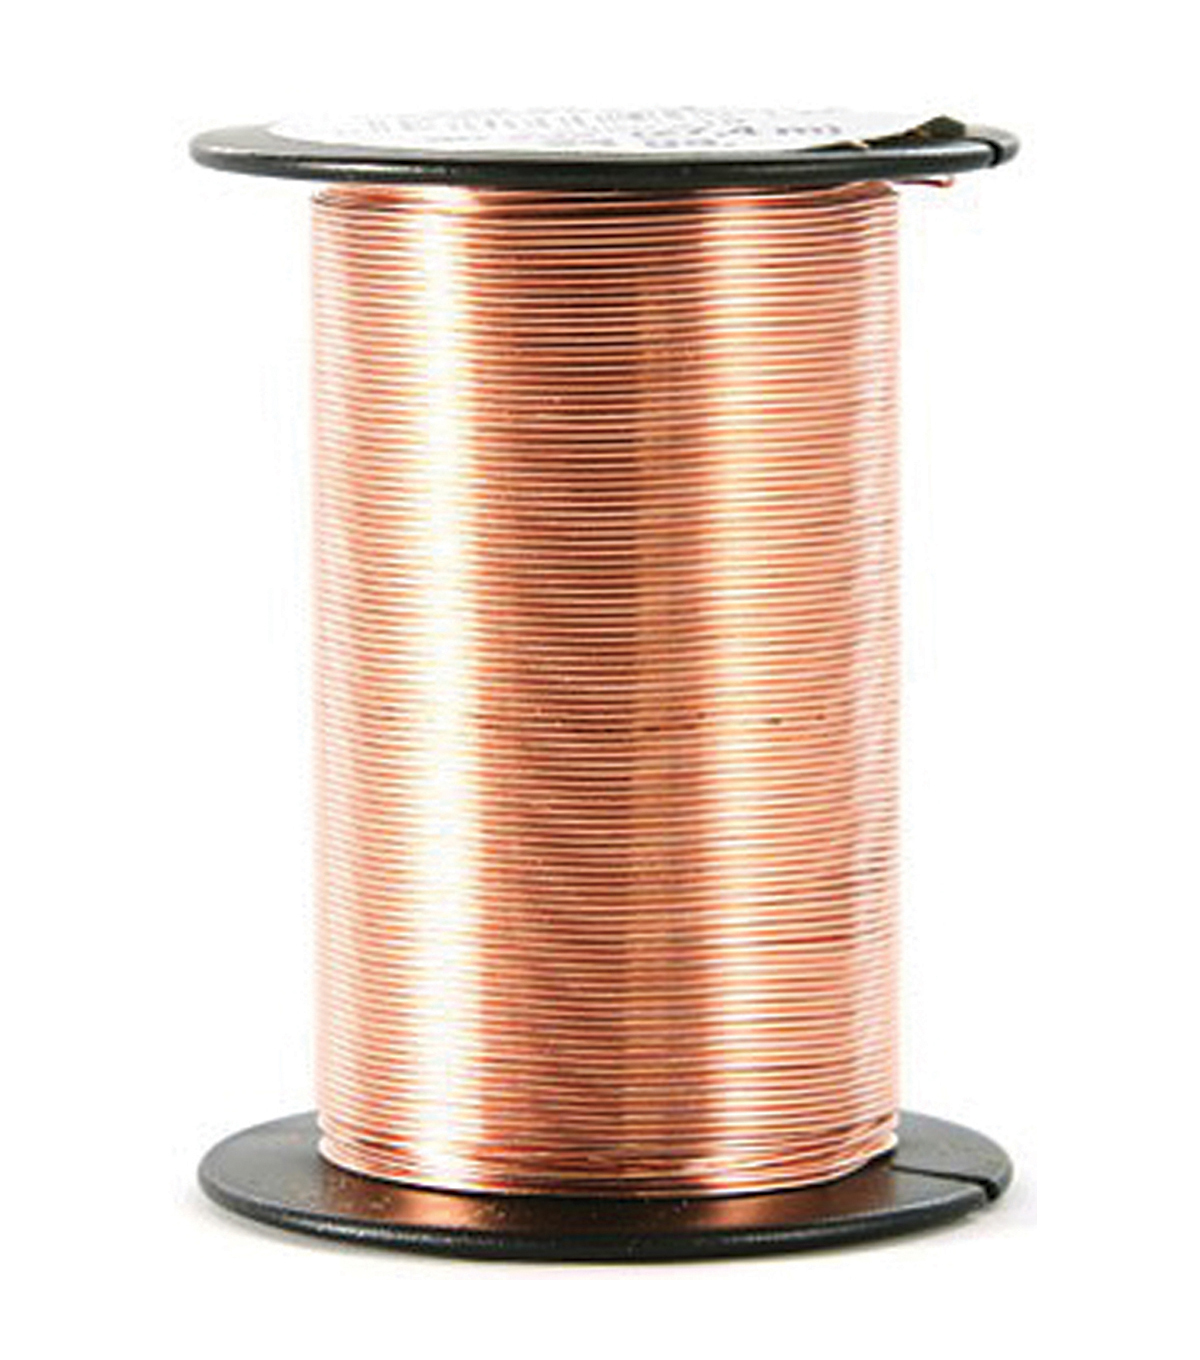 24 Gauge Wire 25 Yards/Pkg-Copper